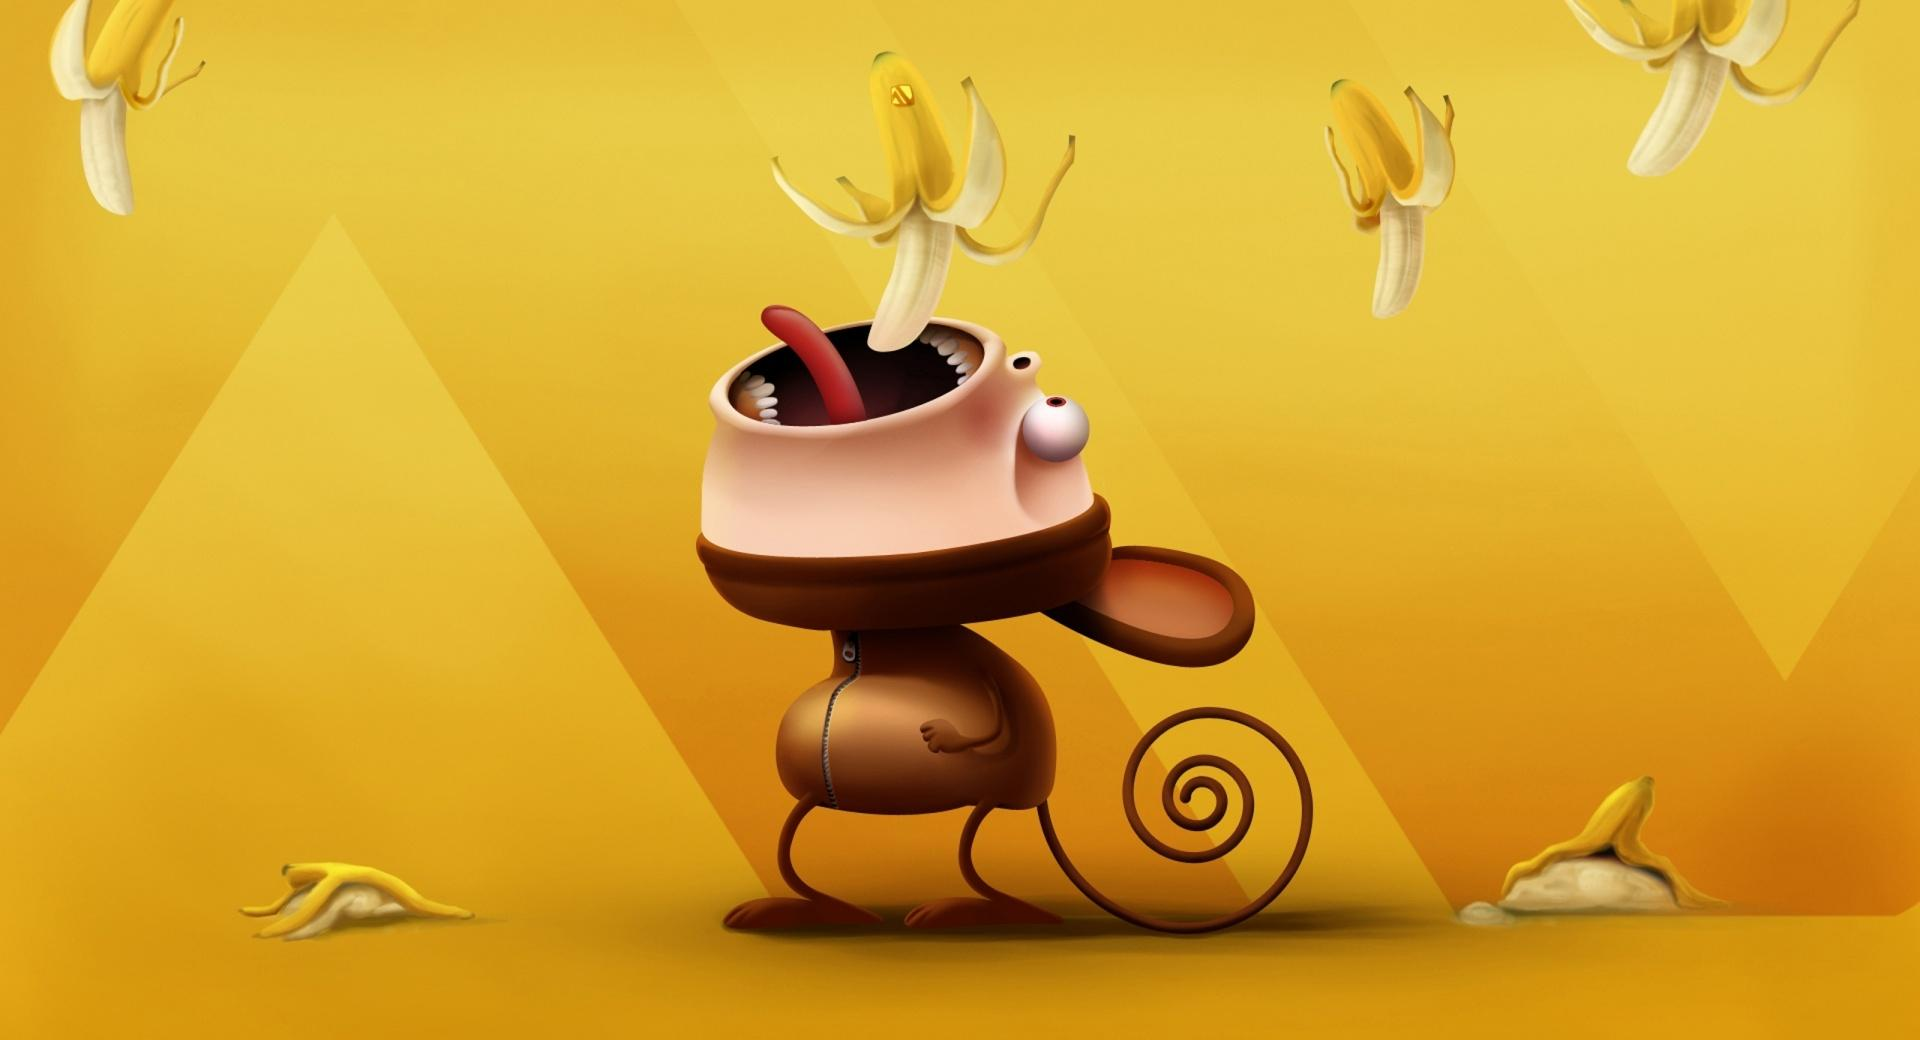 Funny Monkey Eating Bananas wallpapers HD quality